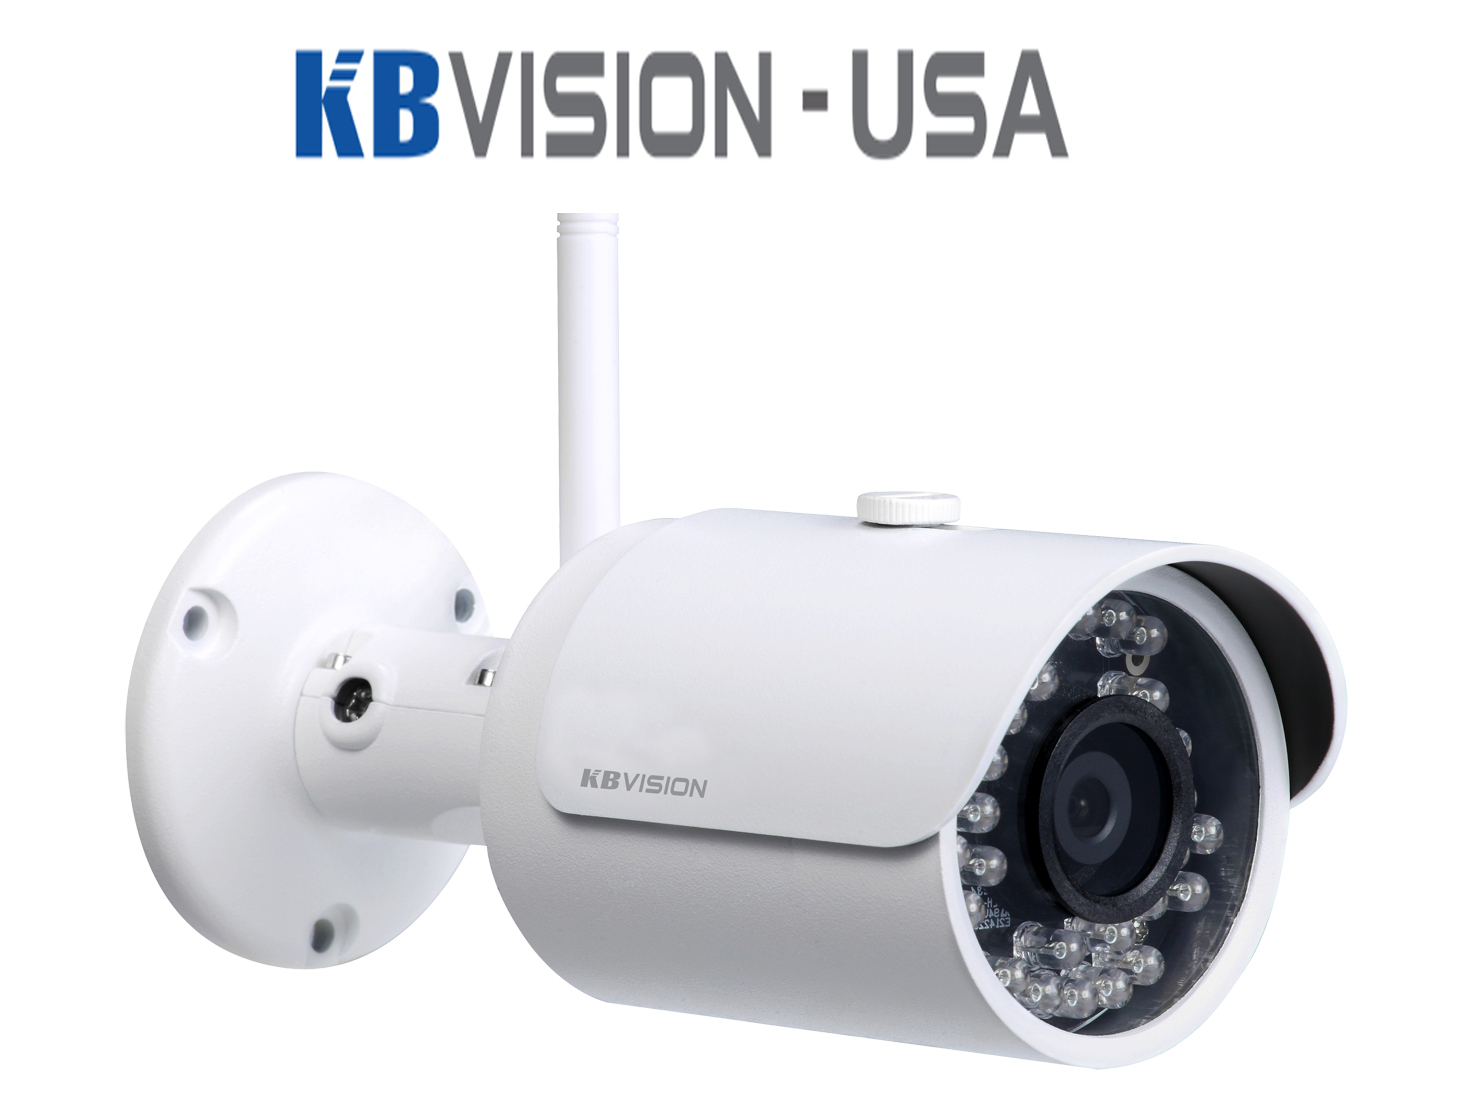 KBVISION-USA : KB-2303WN